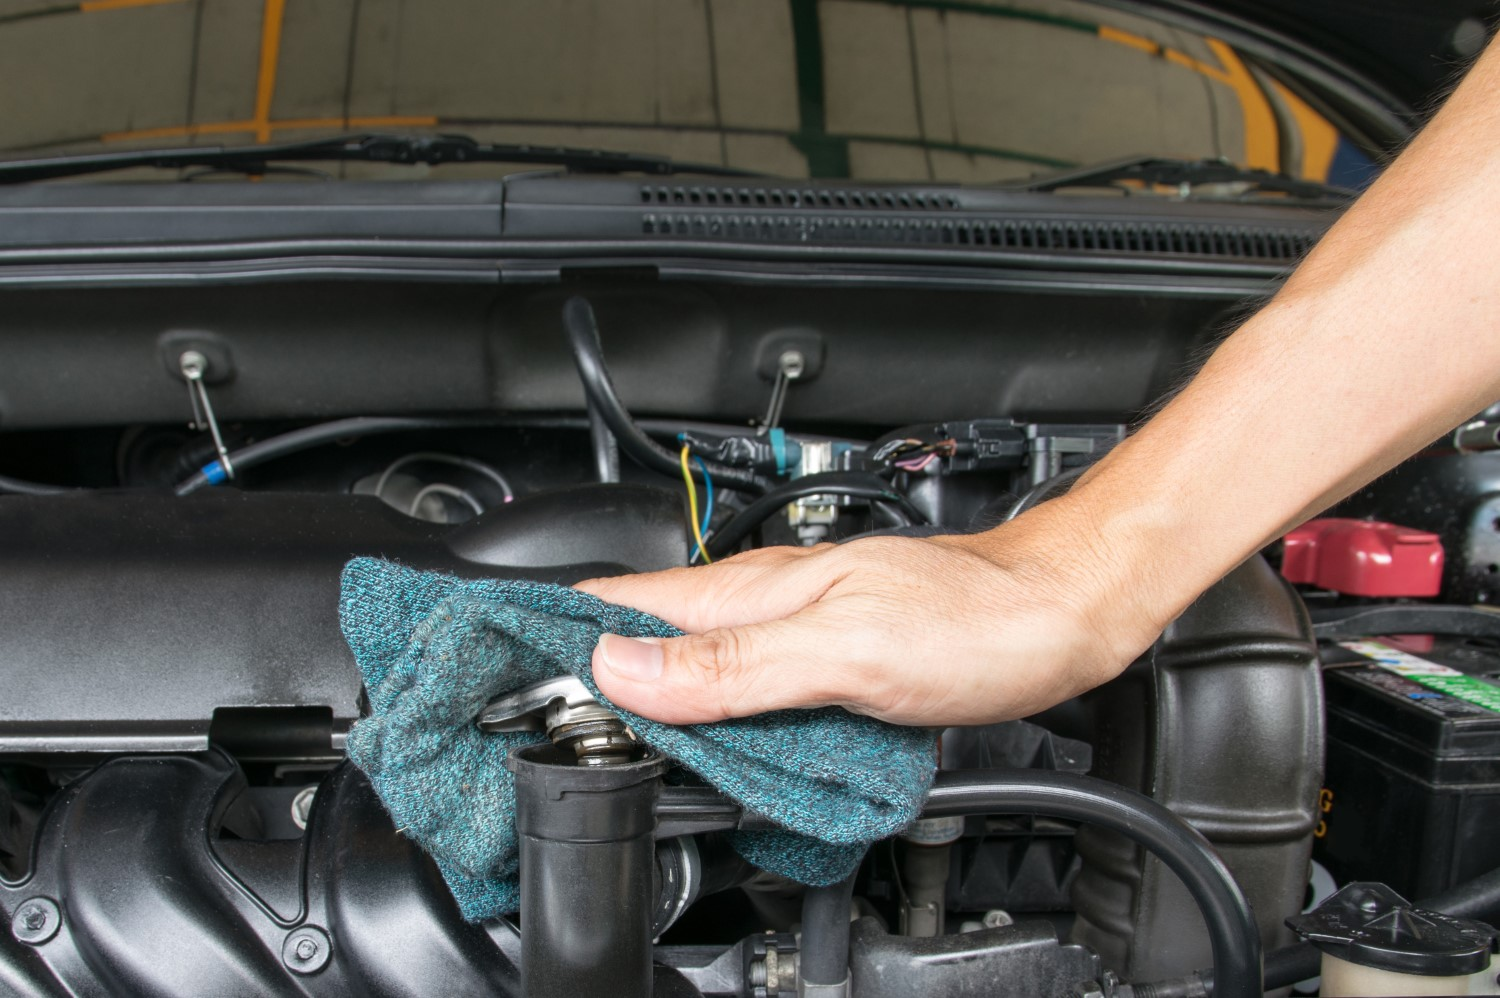 stock-photo-hand-open-valve-metal-cover-on-an-radiator-for-engine-cooling-287533067-min